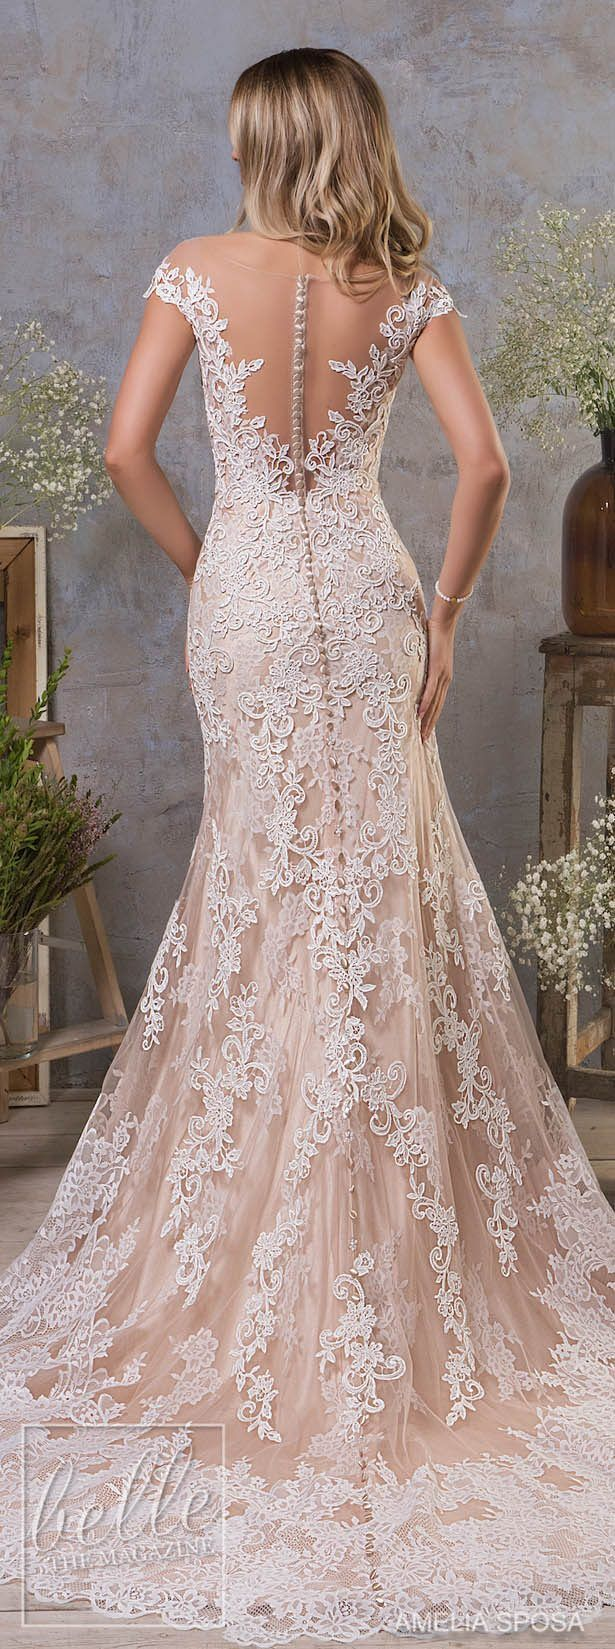 Amelia sposa fall wedding dresses amelia sposa amelia and